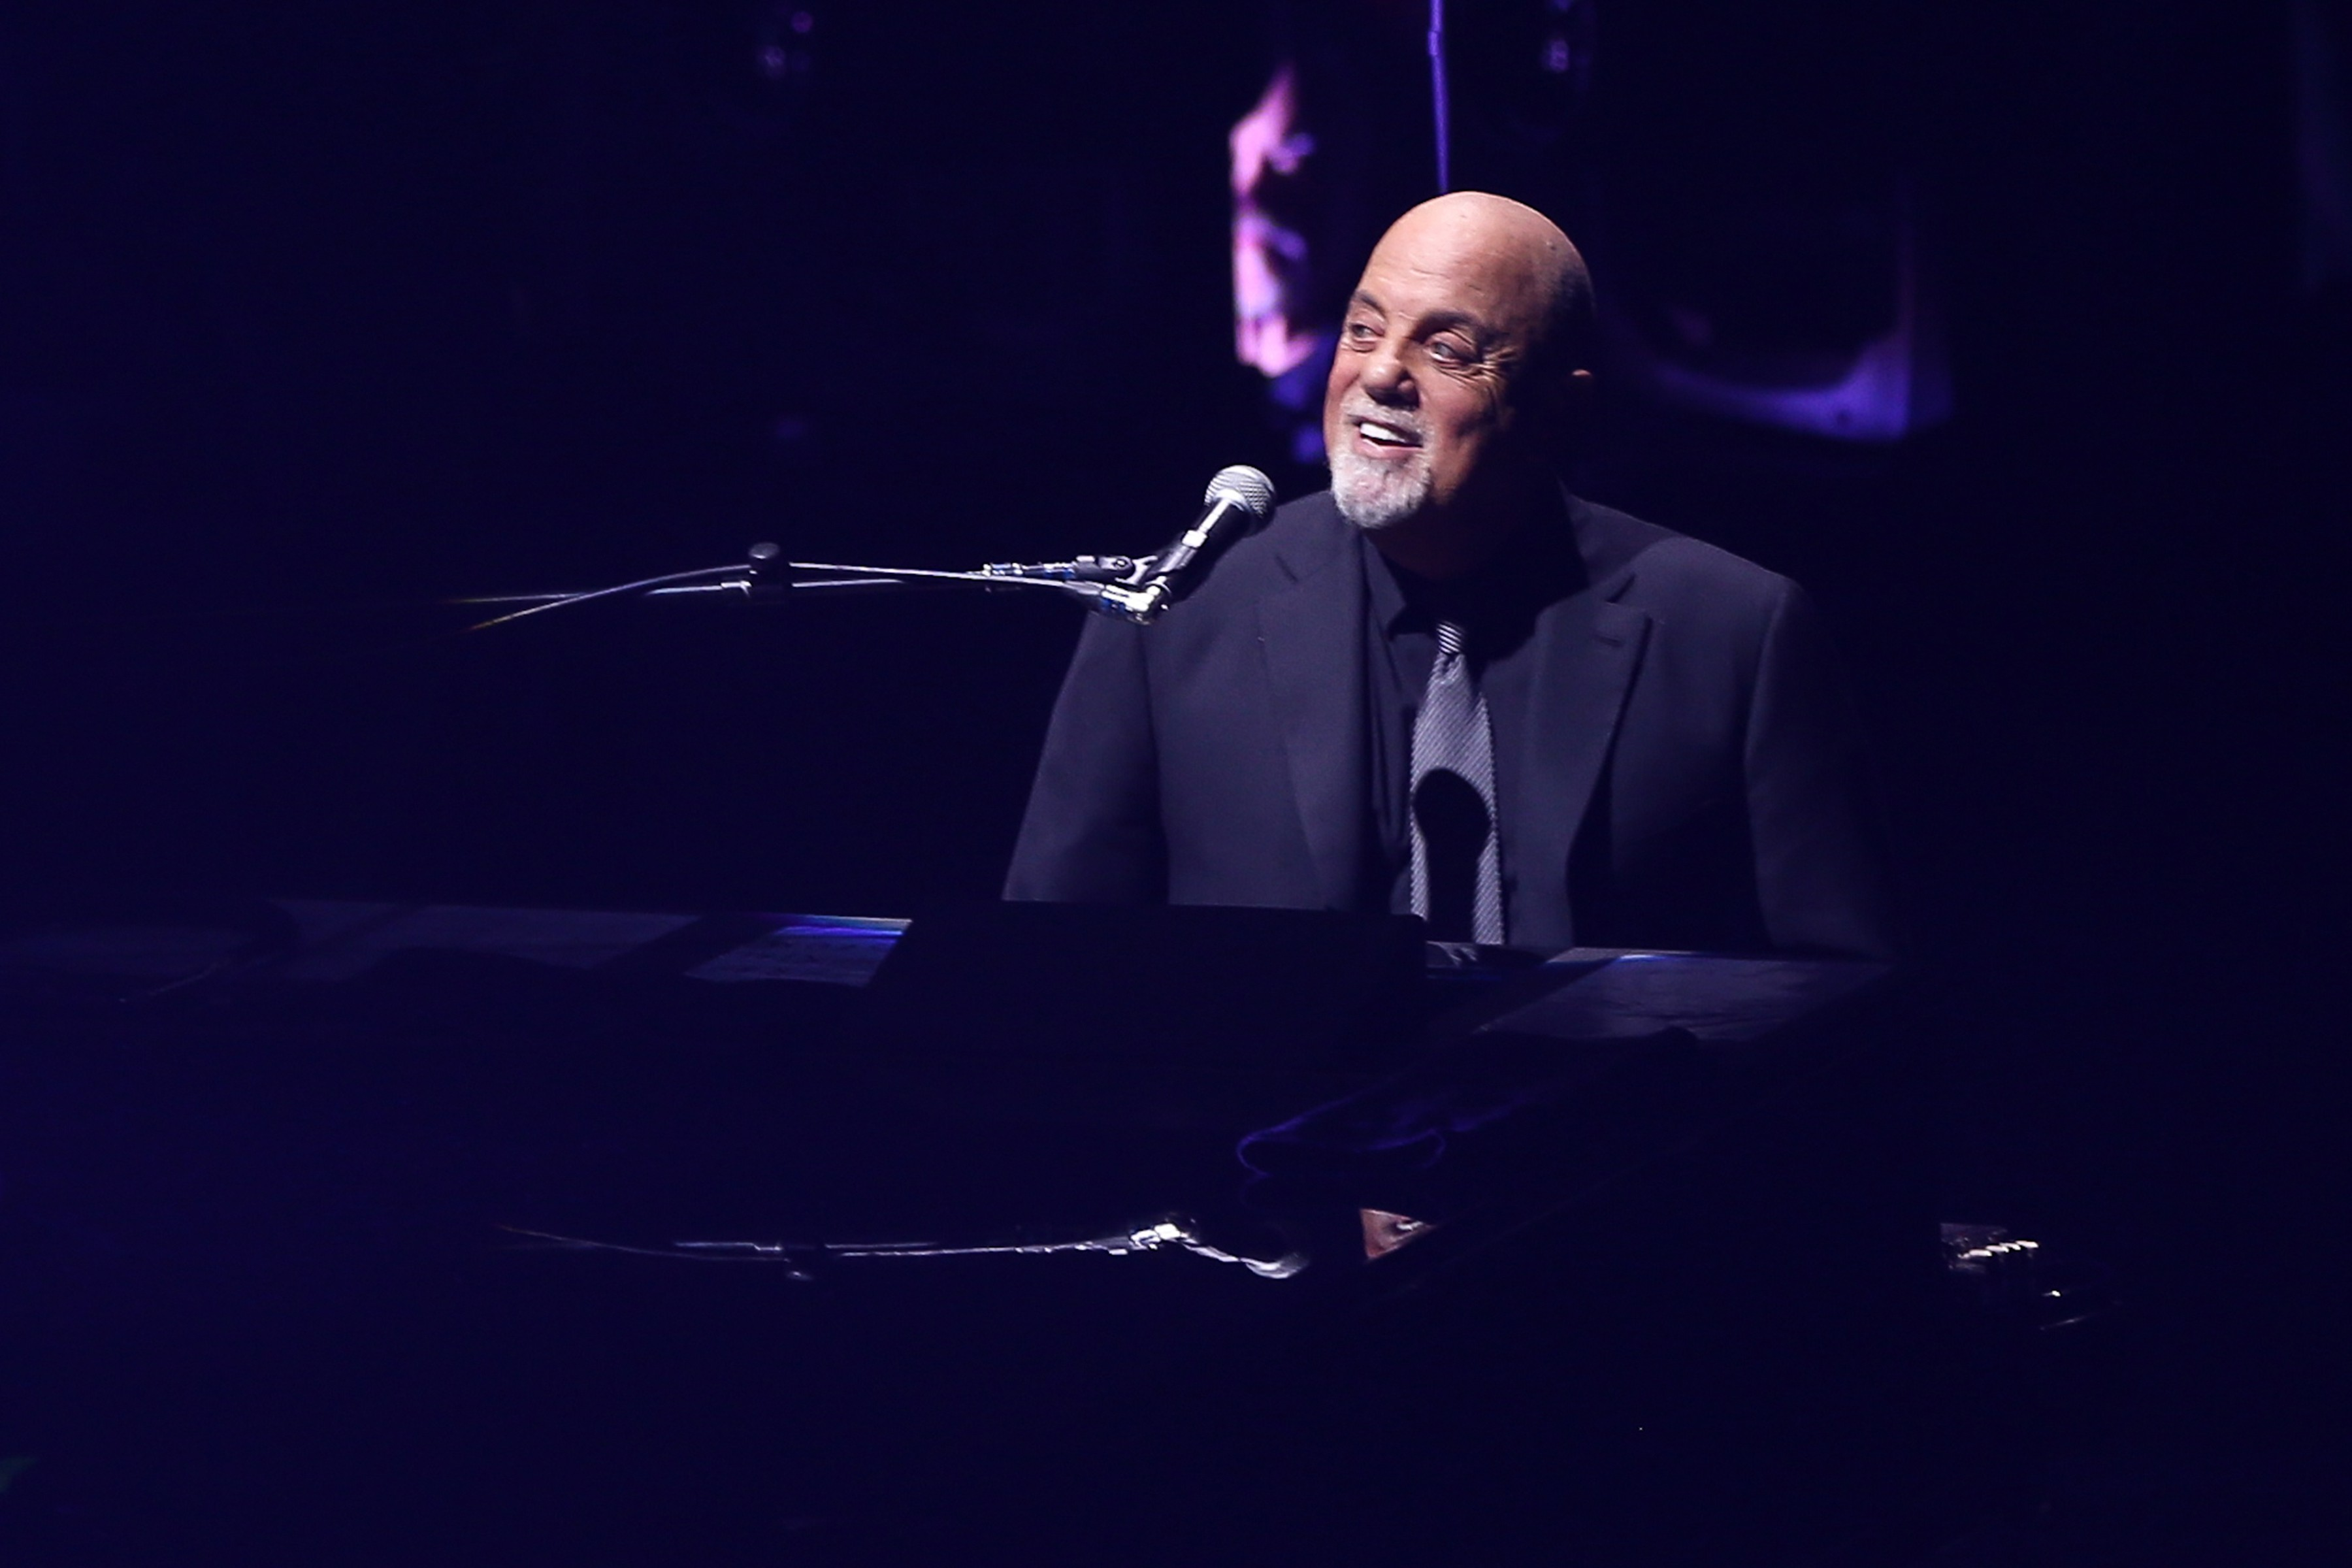 Uptown dude and piano man Billy Joel announces performance at Detroit's Comerica Park